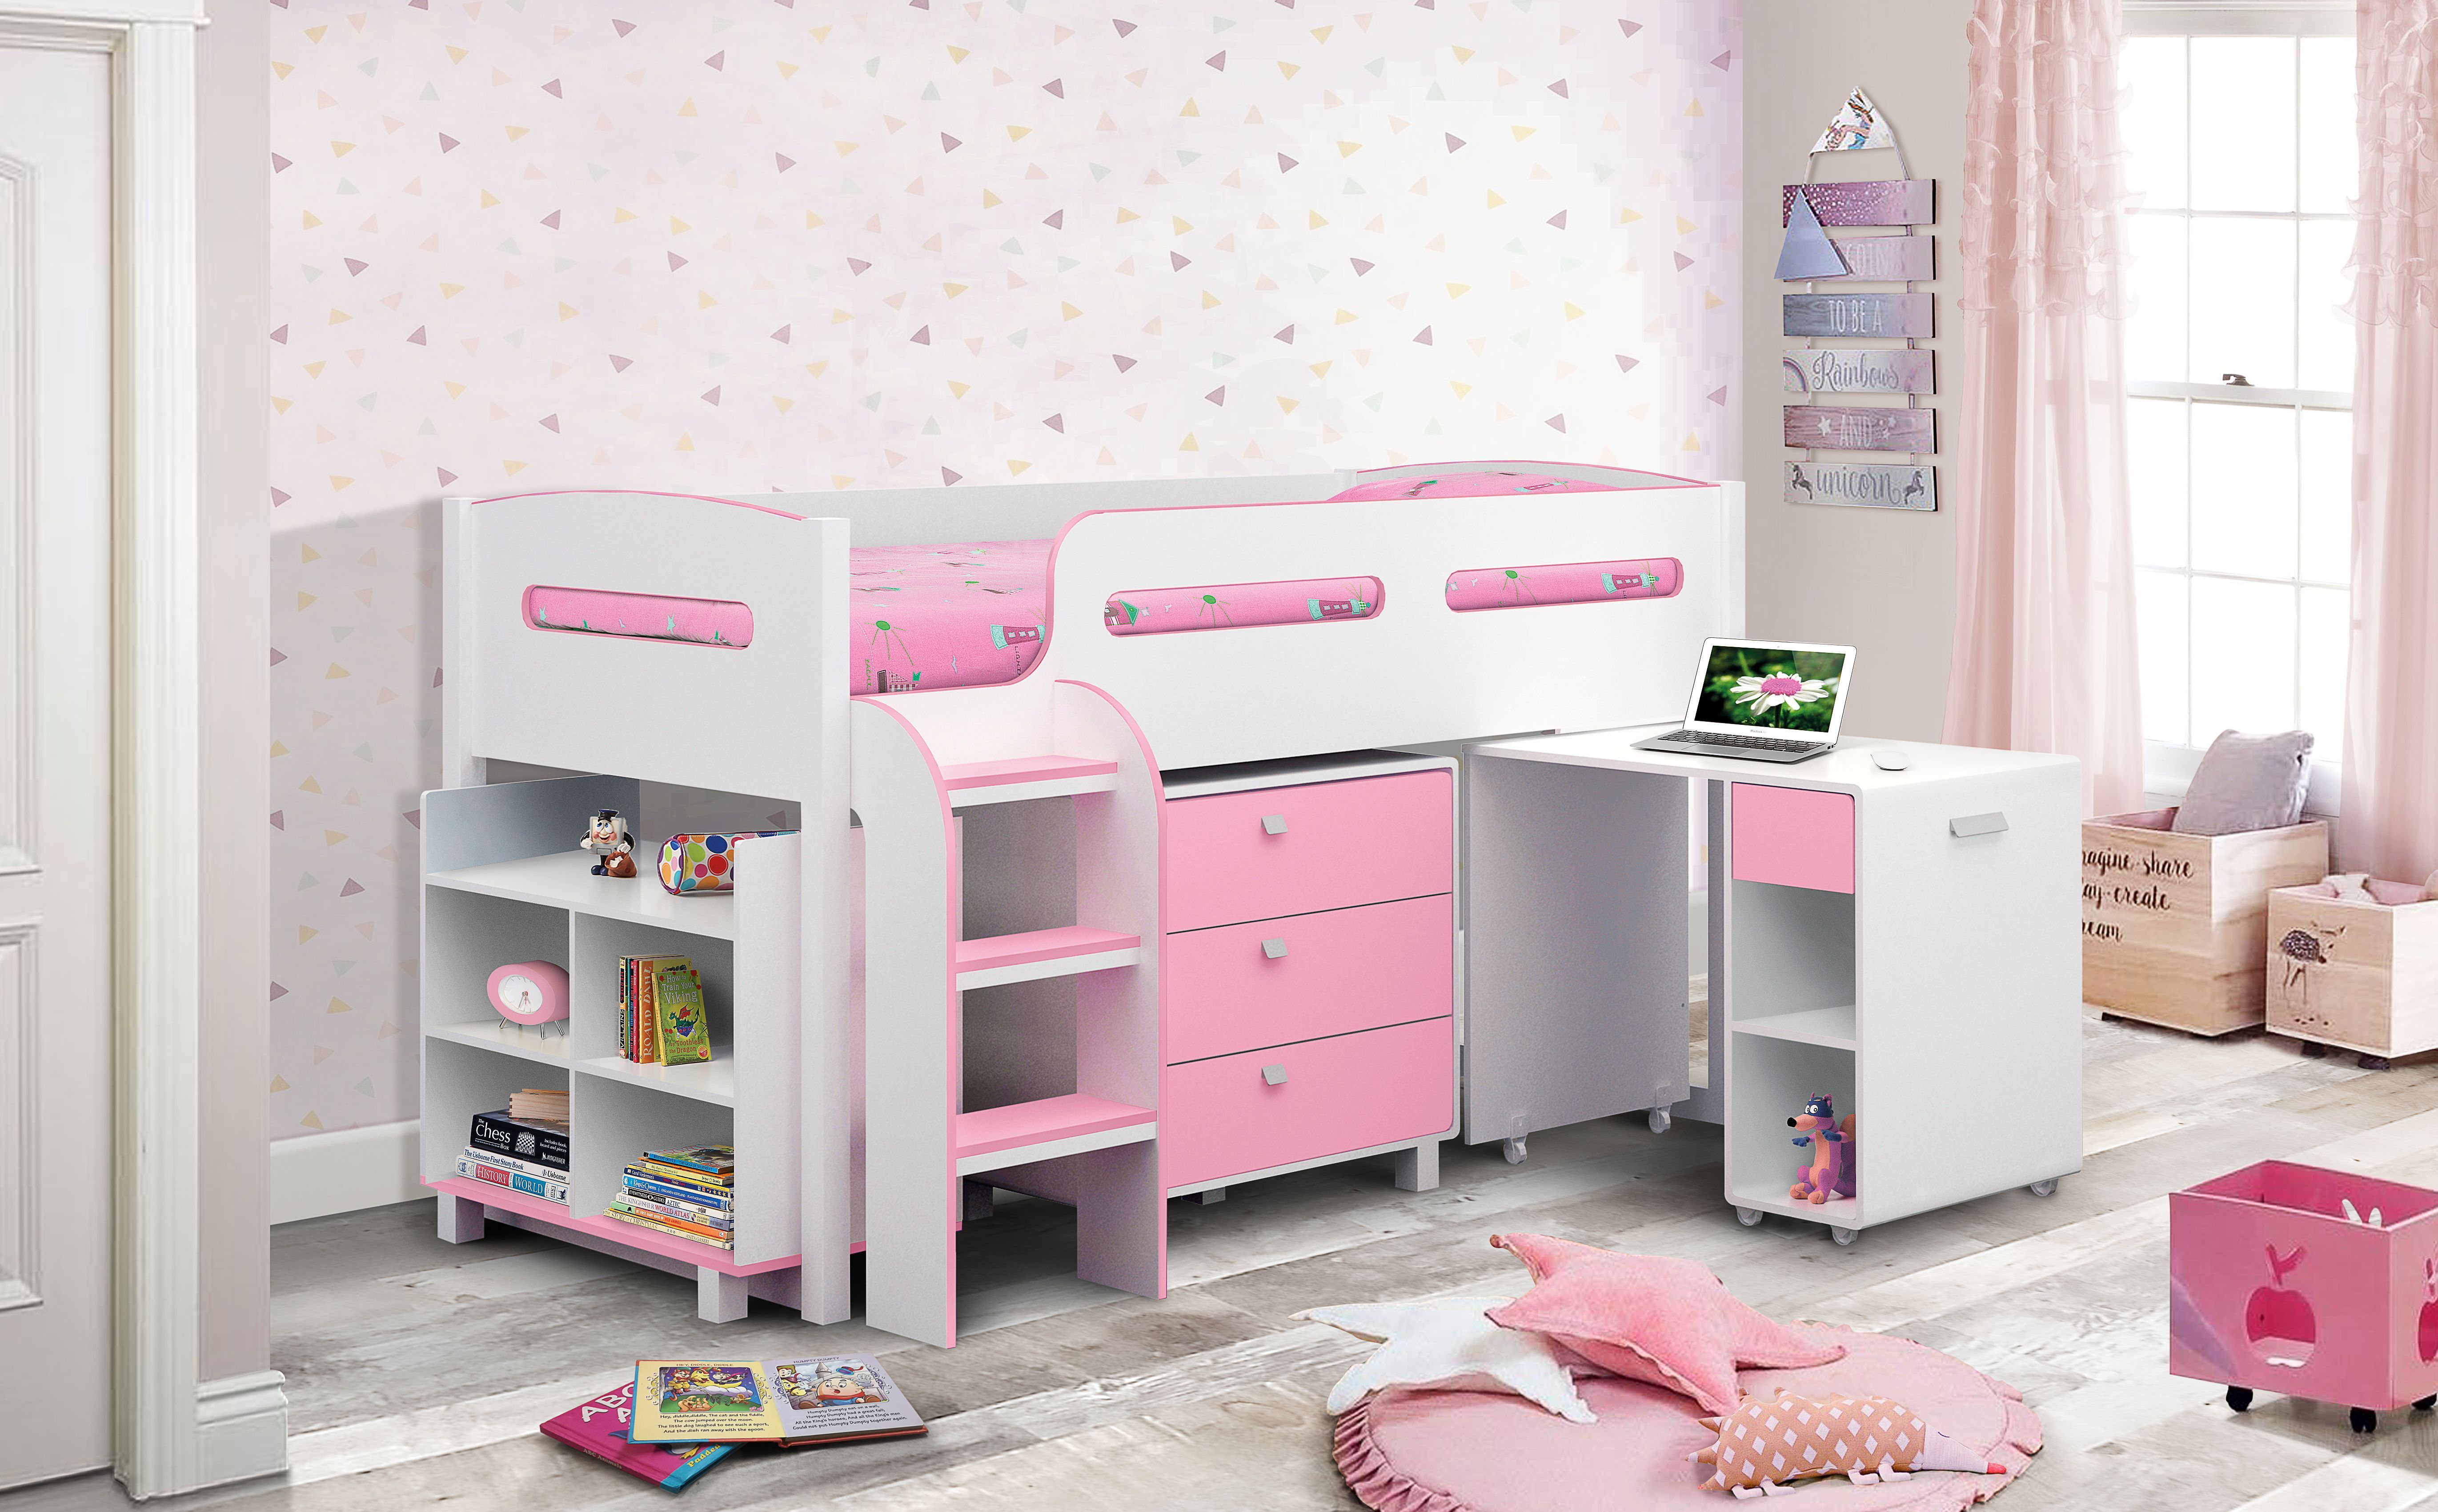 Versatile Practical And Utterly Charming The Kimbo Pink White Mid Sleeper Cabin Bed